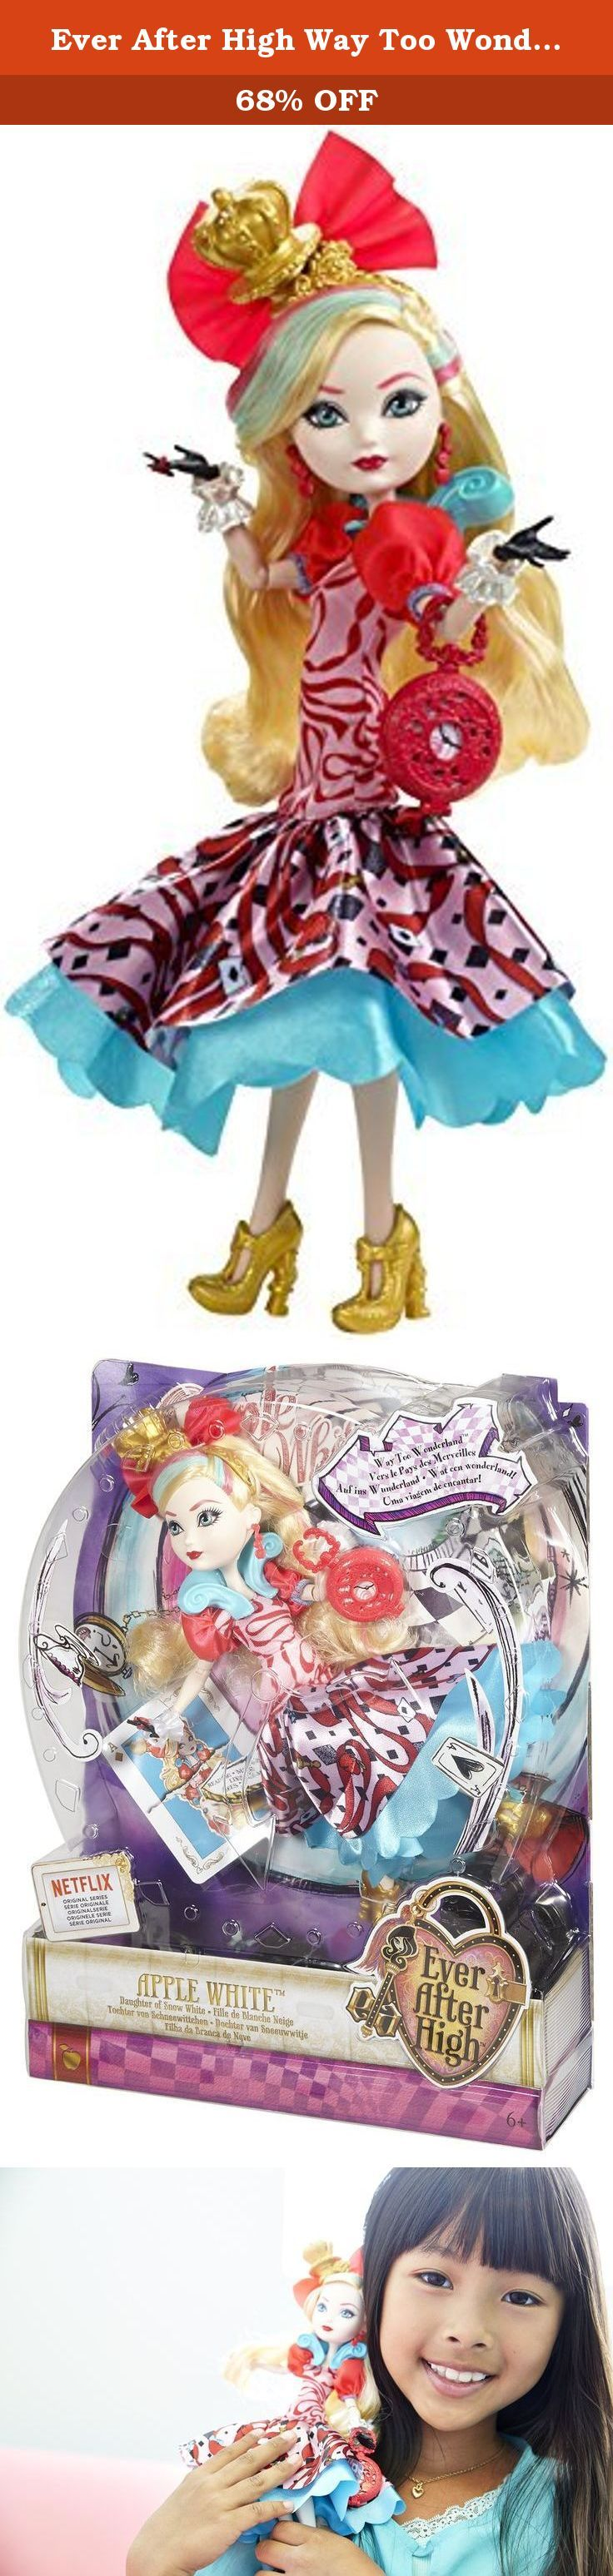 "Ever After High Way Too Wonderland Apple White Doll. Shut the storybooks you thought you knew because at Ever After High, you can Choose Your Own Ever After! For these teenage sons and daughters of the most famous fairytales ever, every day can turn into an epic day. In the epic Netflix Original Series, ""Way Too Wonderland,"" Raven Queen, daughter of the Evil Queen, tries to magically reverse her mother's curse on Wonderland and accidentally transports herself and her friends to Wonderland..."